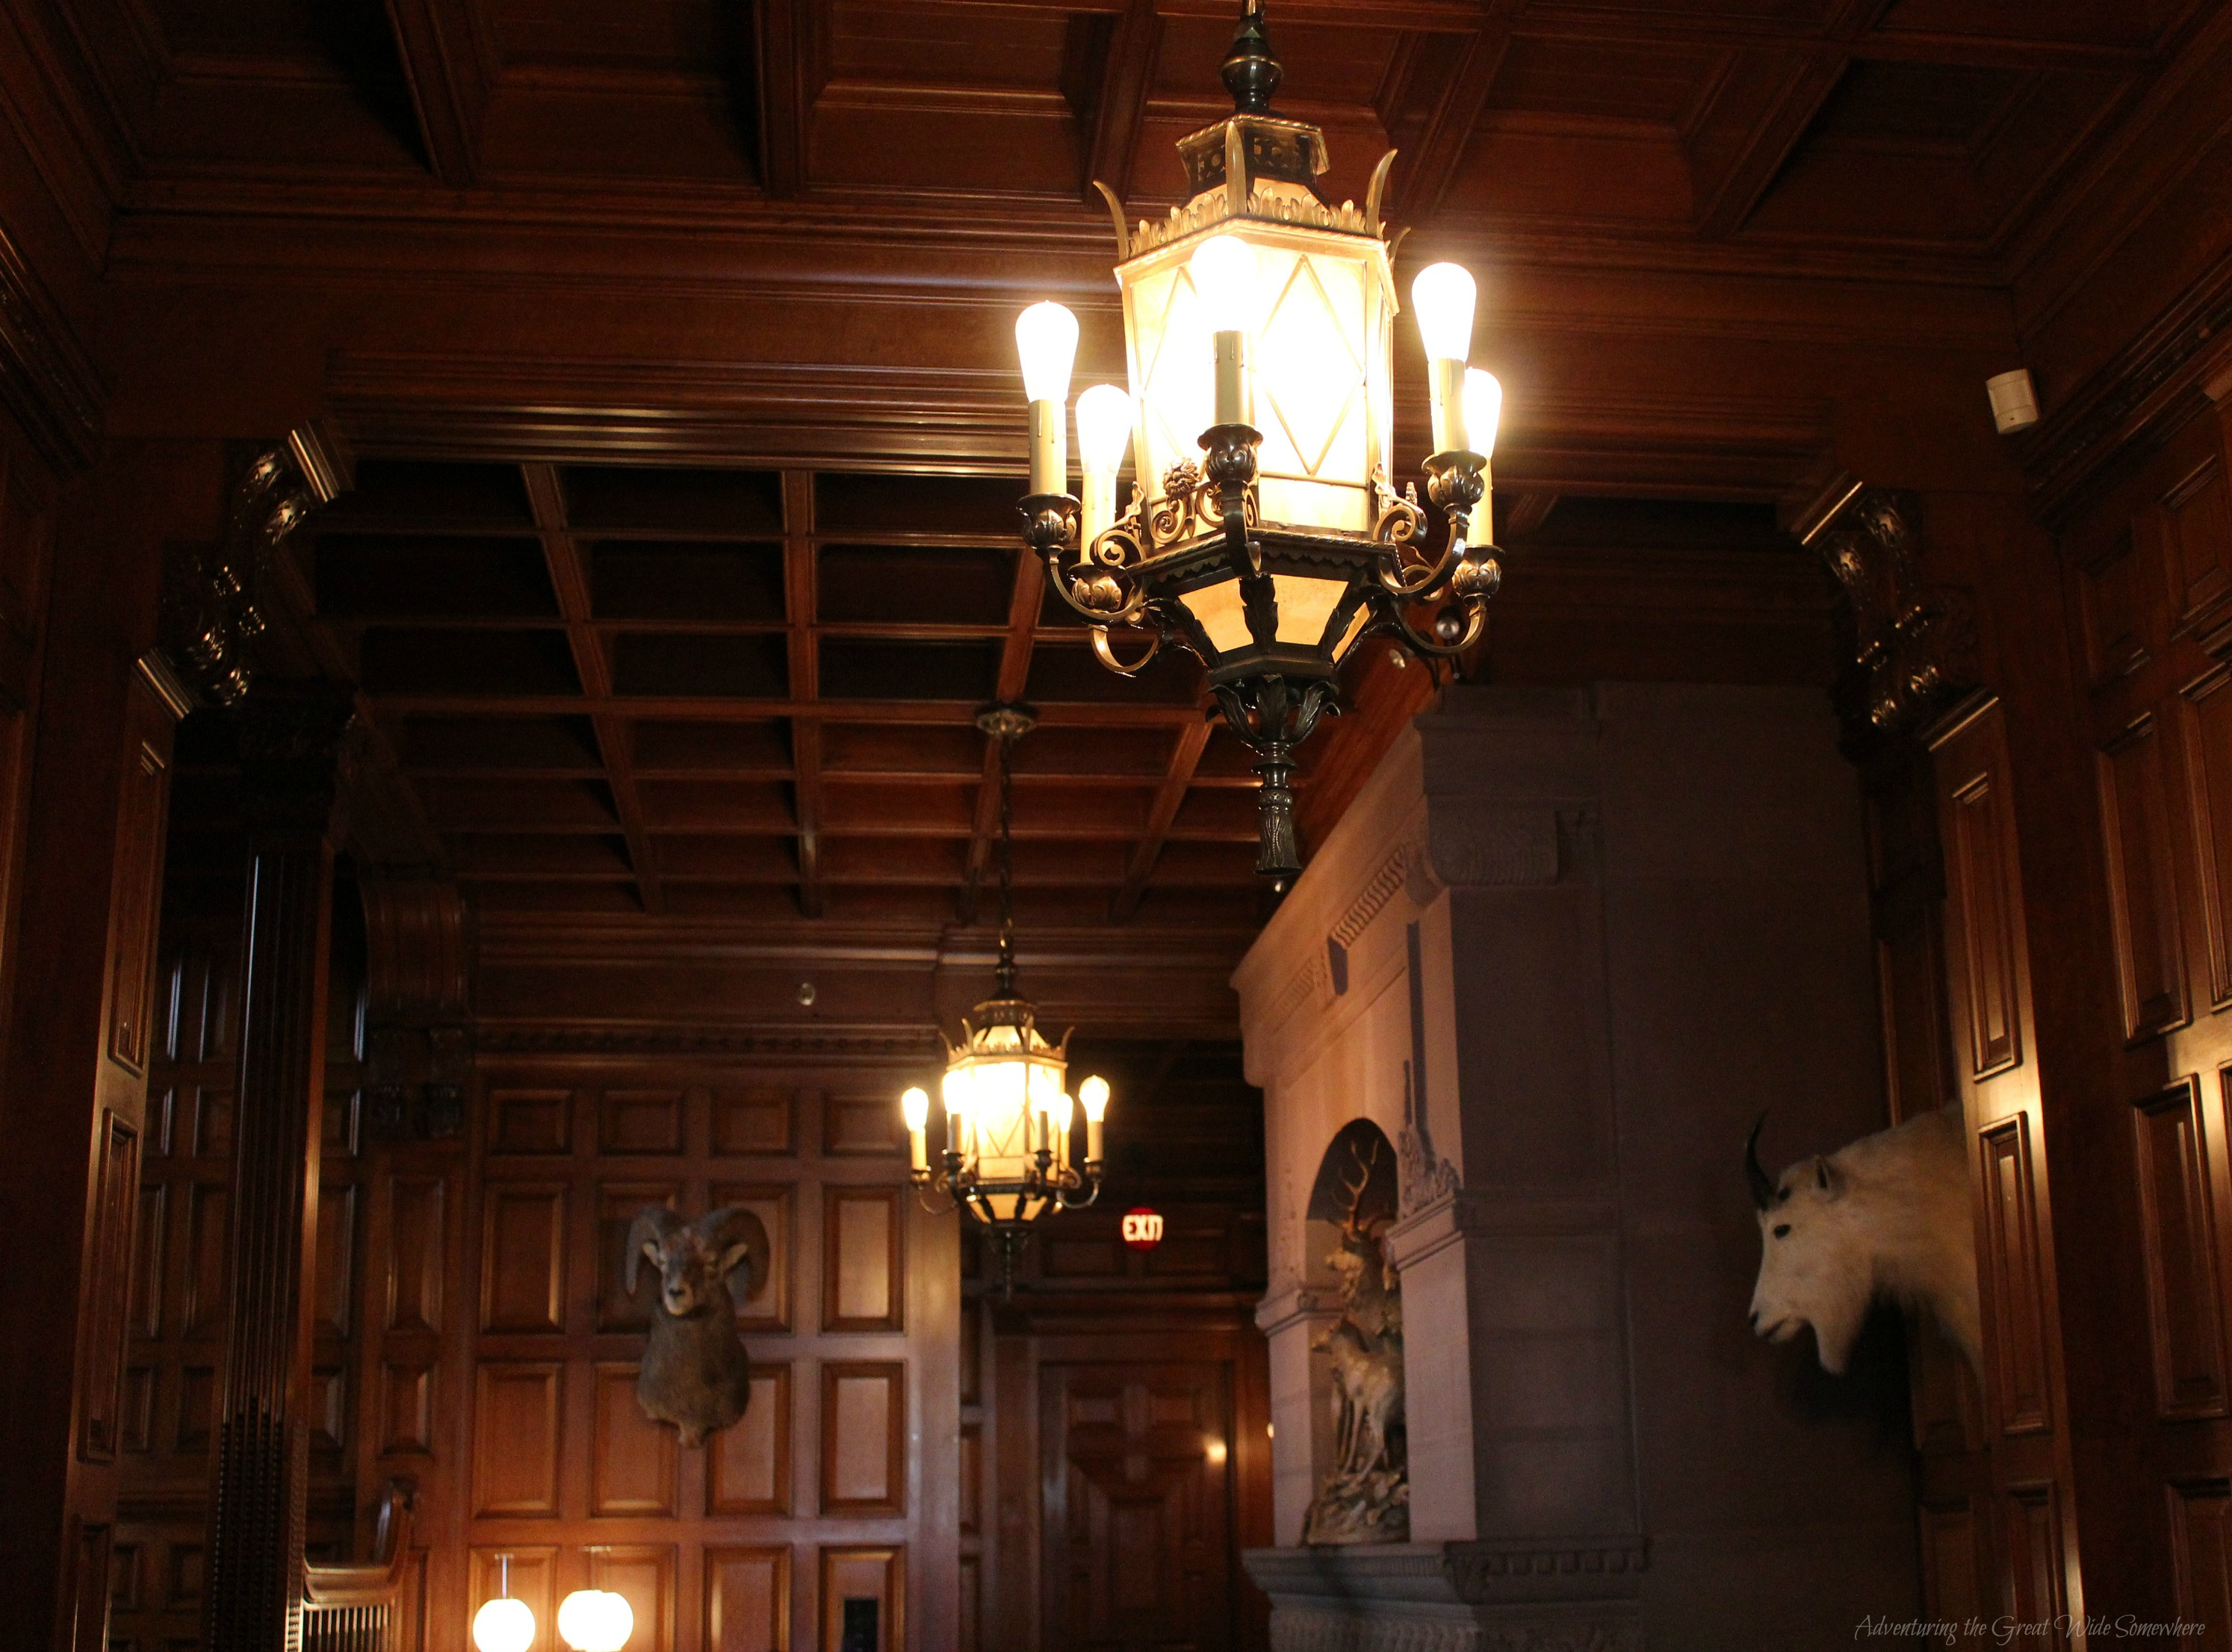 First Floor Entry to Craigdarroch Castle, Featuring Warm Wooden Walls and Intricate Paneling